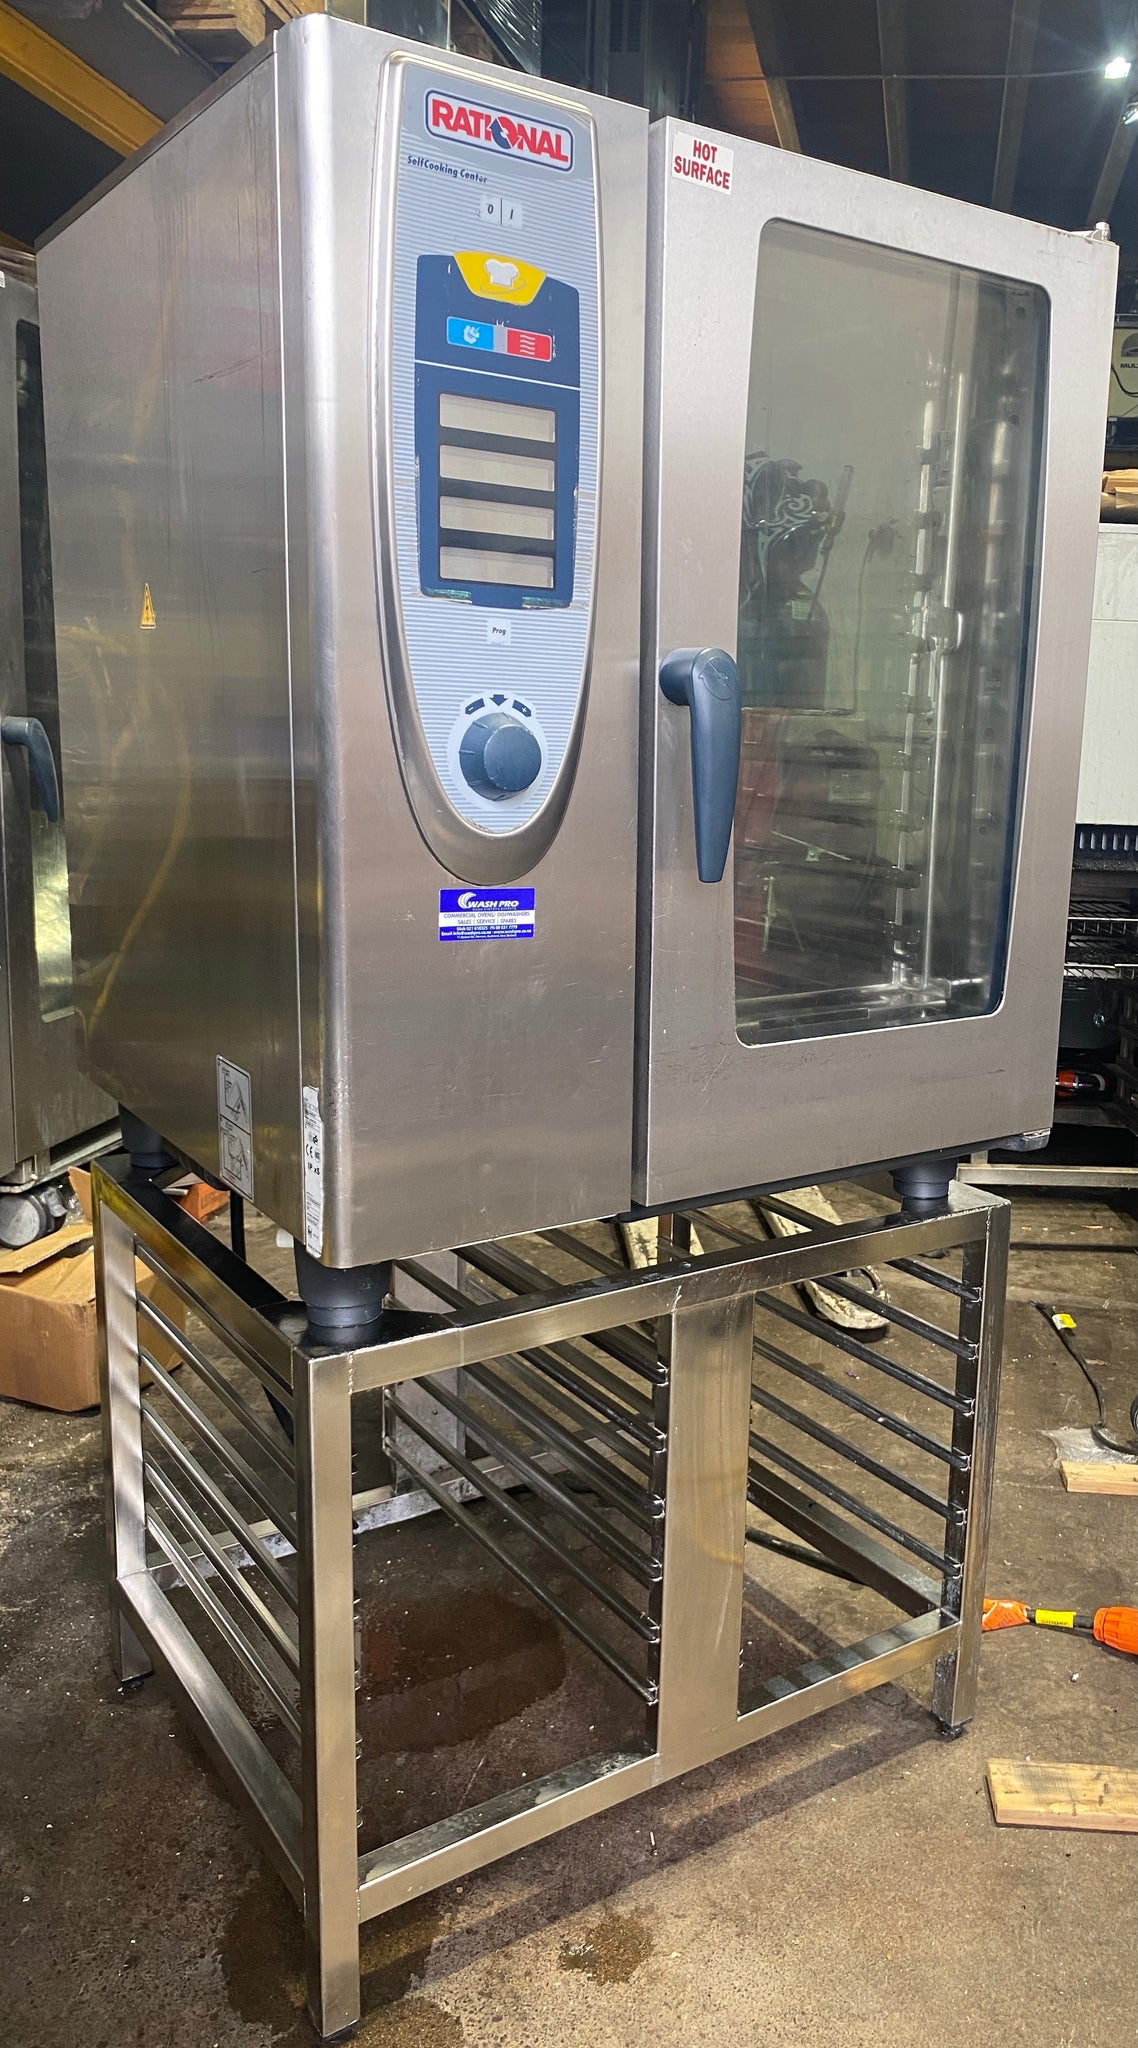 APS463 Rational SCC101E Electric 10 tray Self  Cleaning Combi oven with stand and warranty